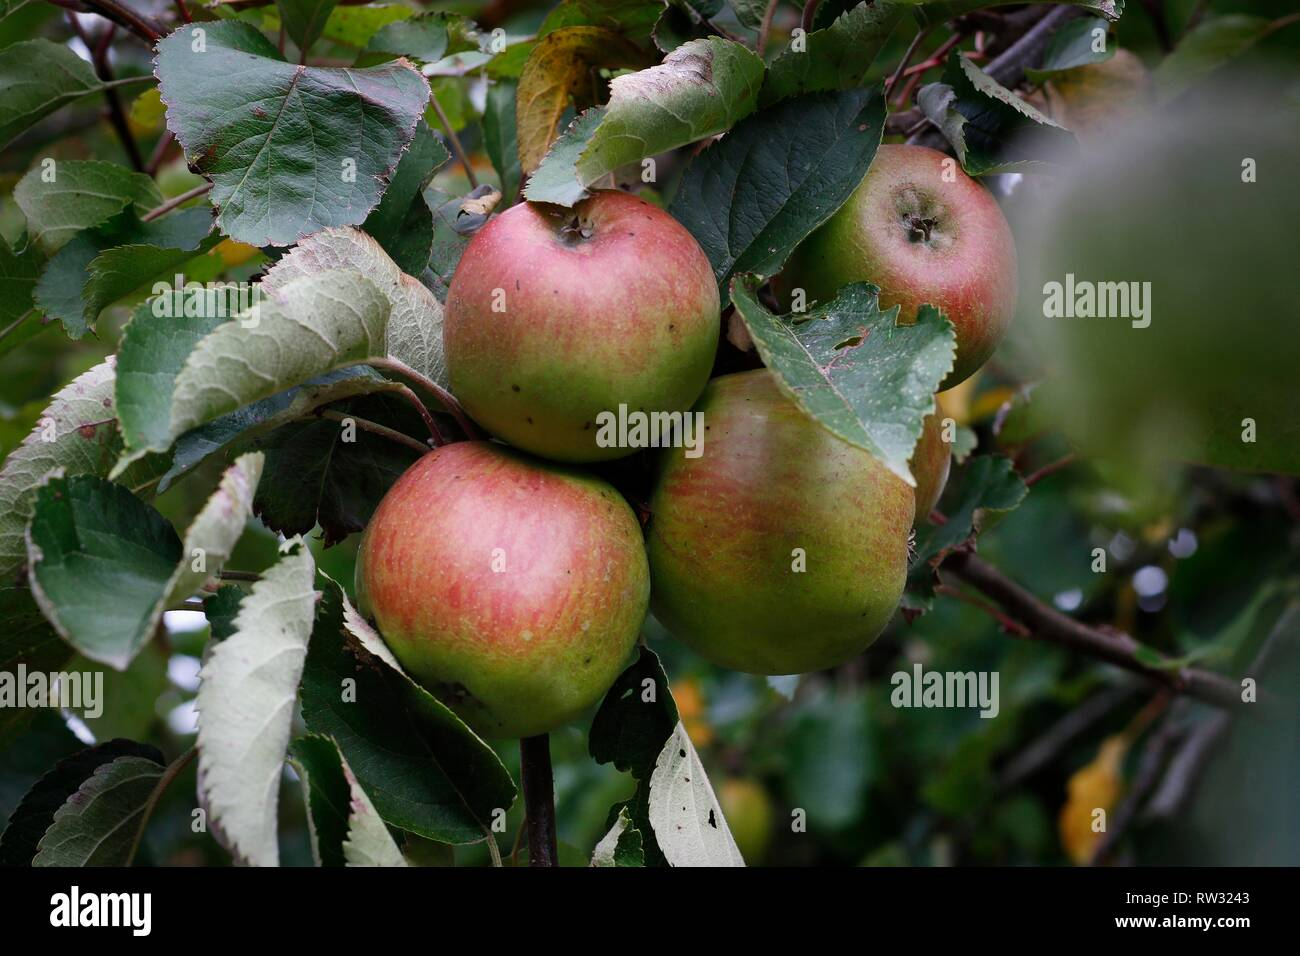 Hard Knock apples, originally from Oxenton, near Cheltenham, Gloucestershire, growing in Charles Martell's home orchard, the renown Gloucestershire ap - Stock Image